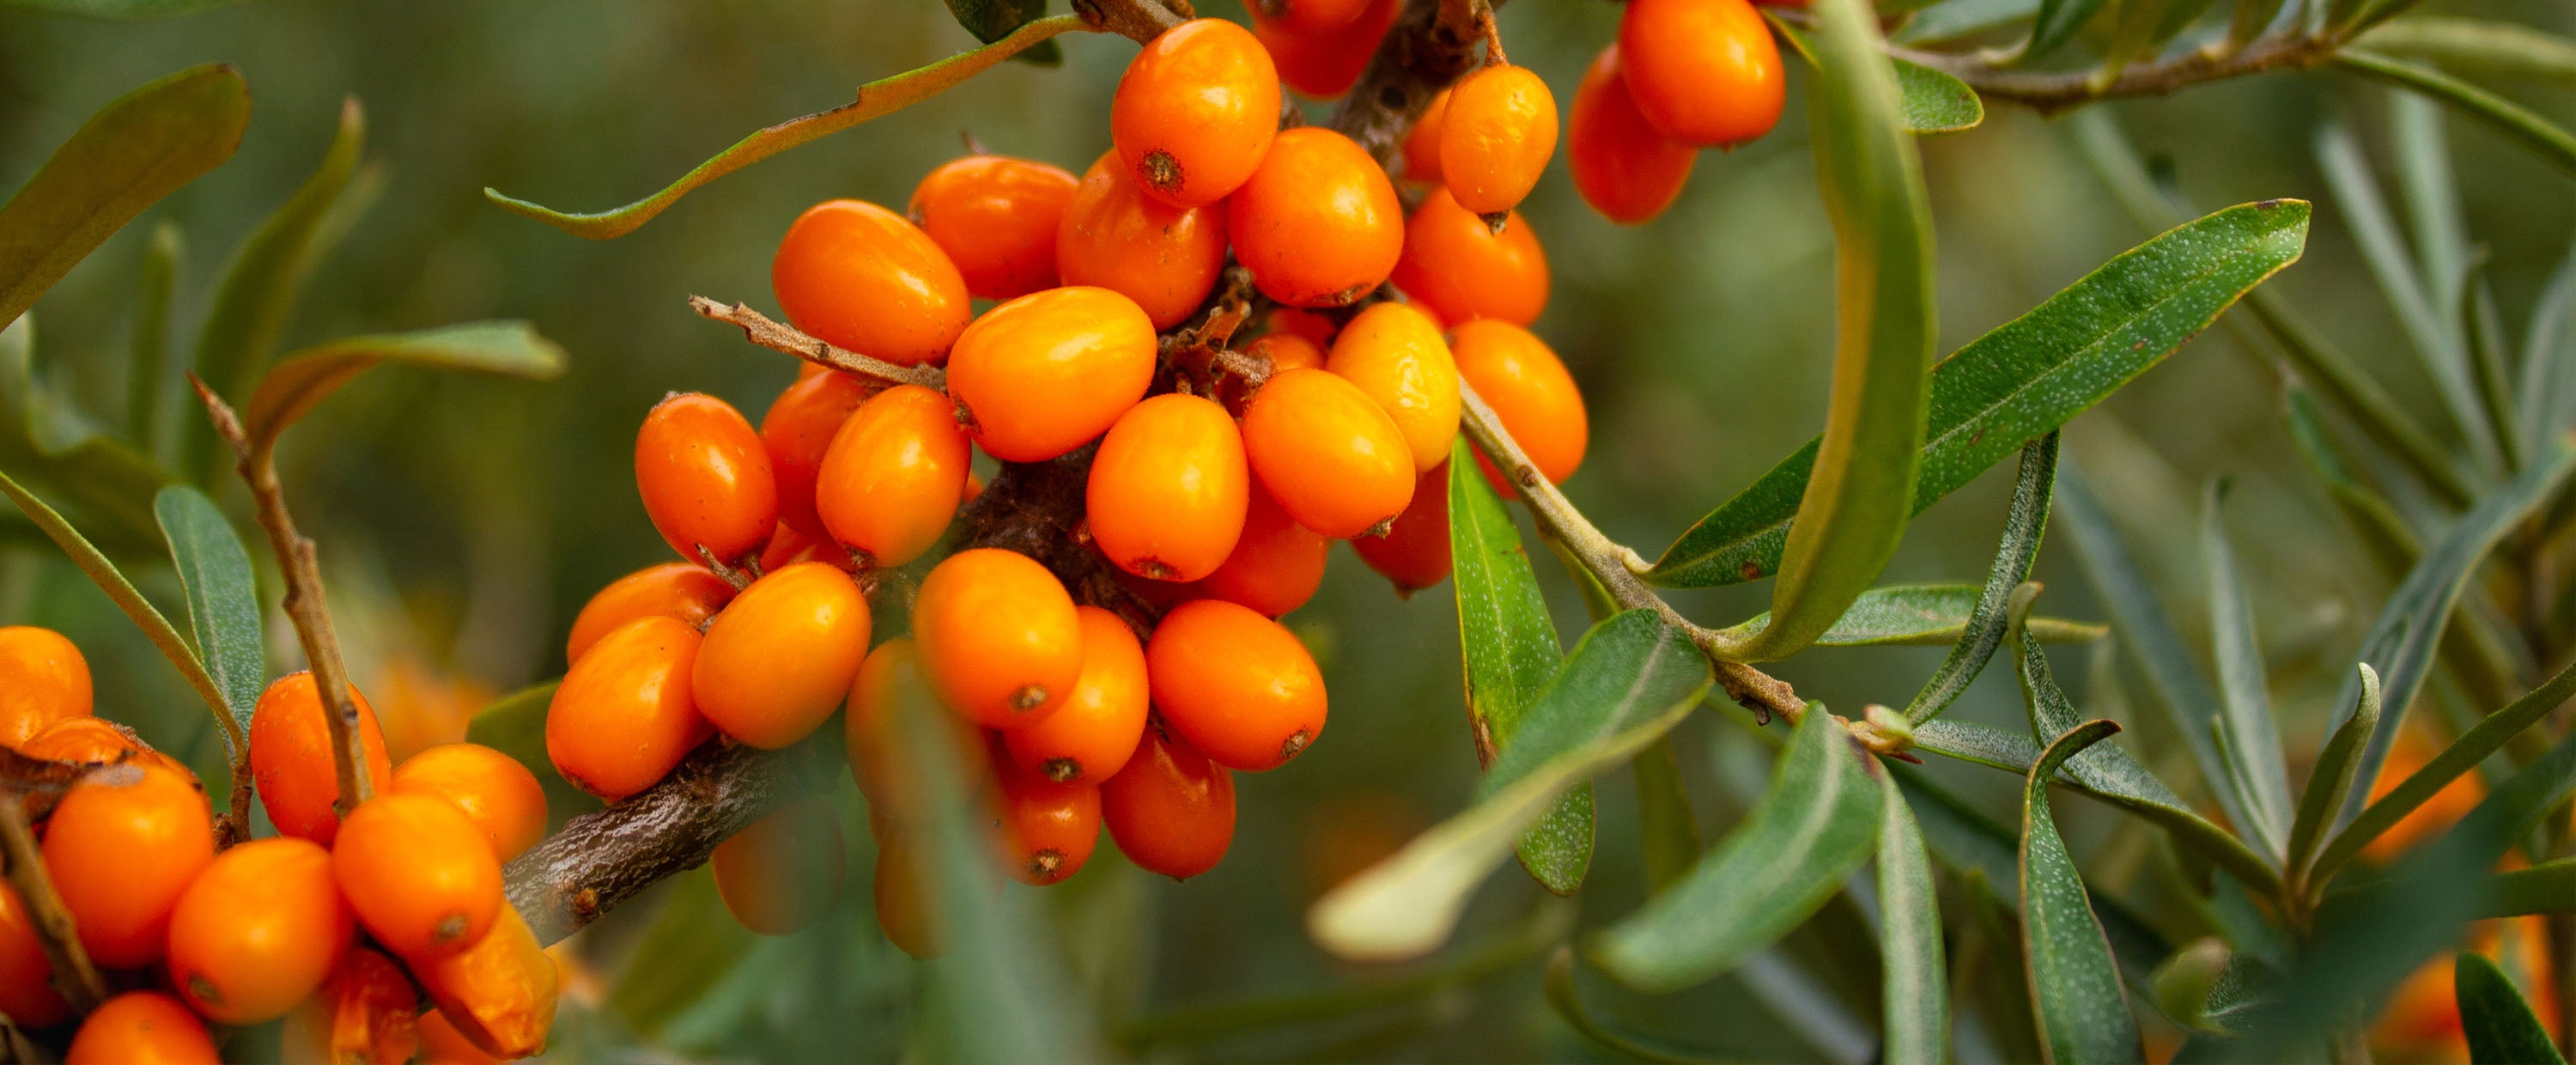 SWELL SKIN Sea Buckthorn Berry for Skincare